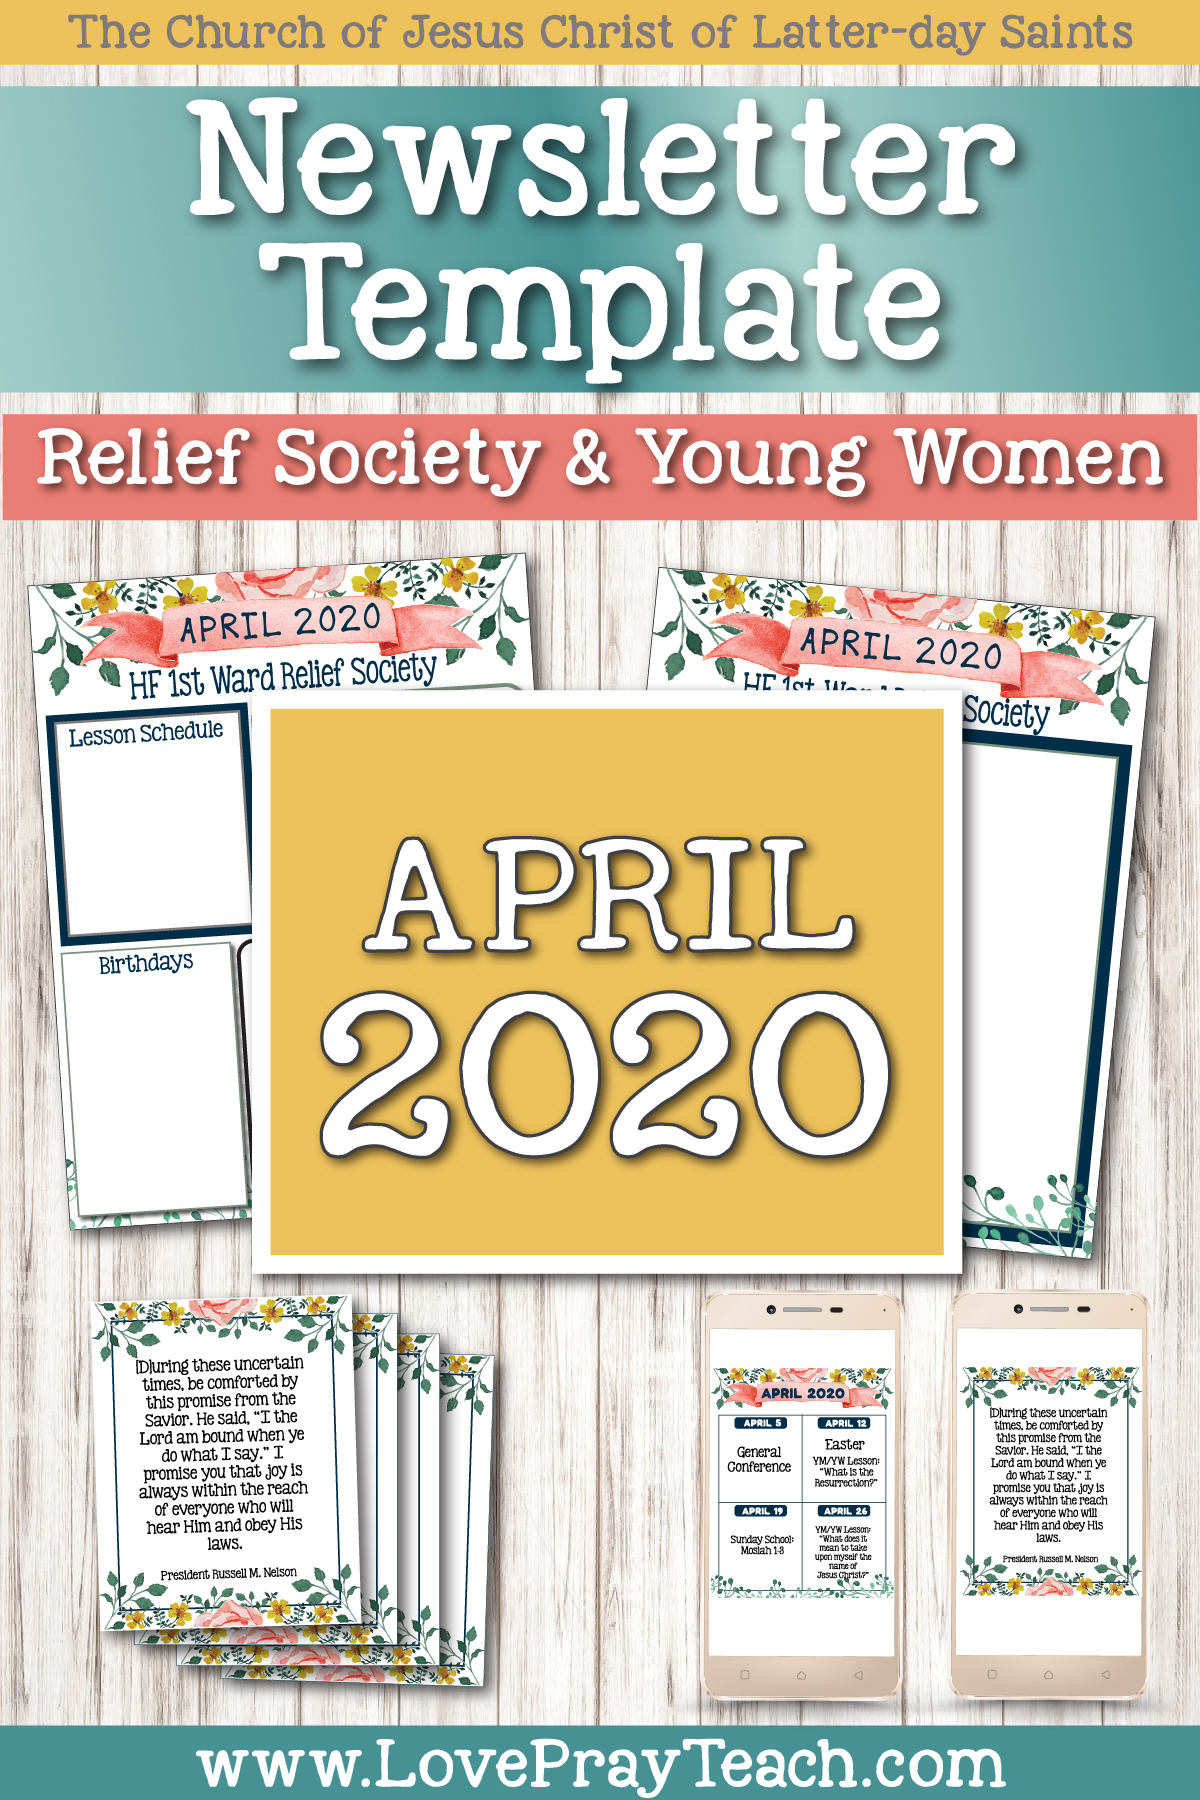 April 2020 Editable Newsletter Bundle! Includes templates for newsletter, Sunday or Tuesday lesson schedule, blank social media post, and blank handouts! www.LovePrayTeach.com